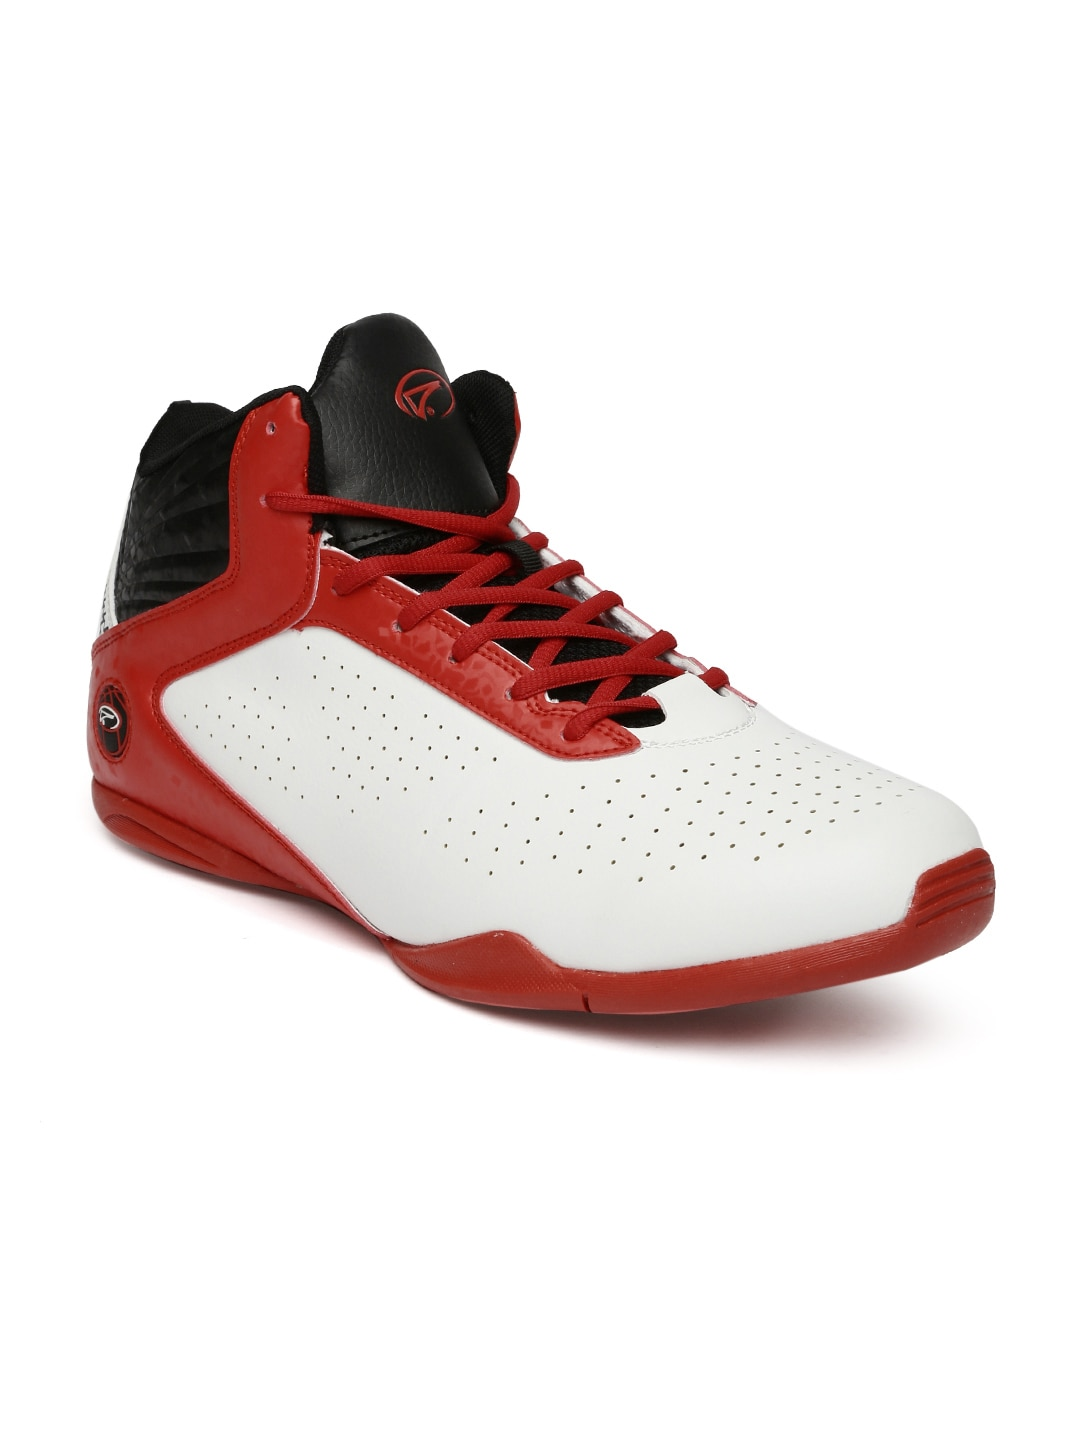 brand new d010e d6bfe Men White Casual Shoe Shoes Sports - Buy Men White Casual Shoe Shoes Sports  online in India